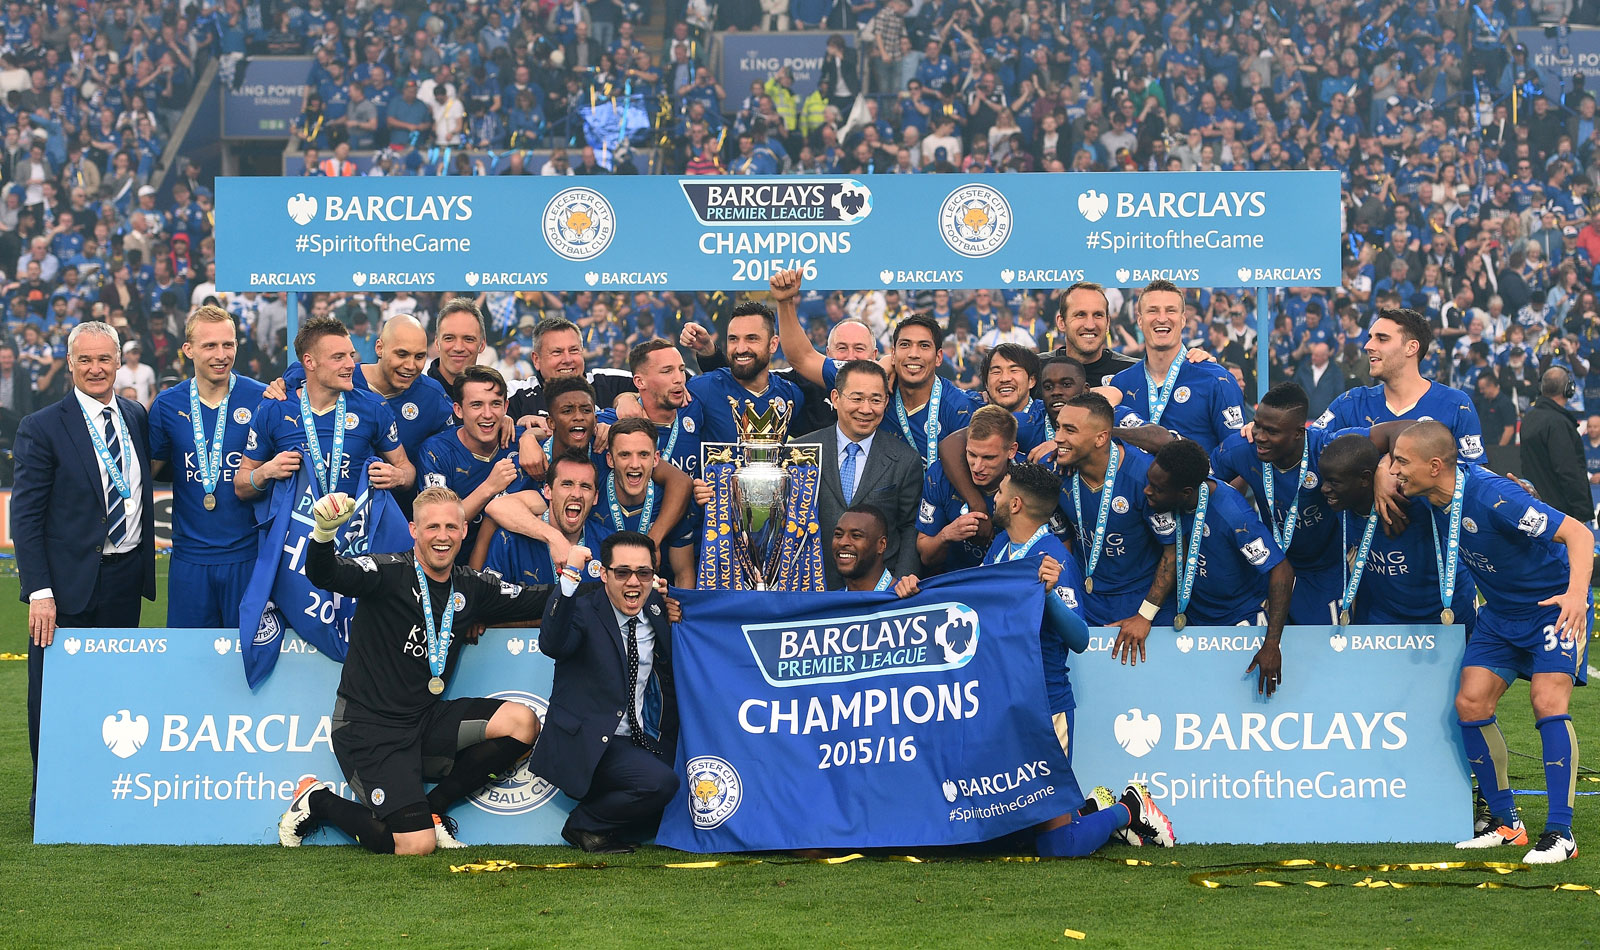 A team photo for the ages: Leicester City with its Premier League championship trophy